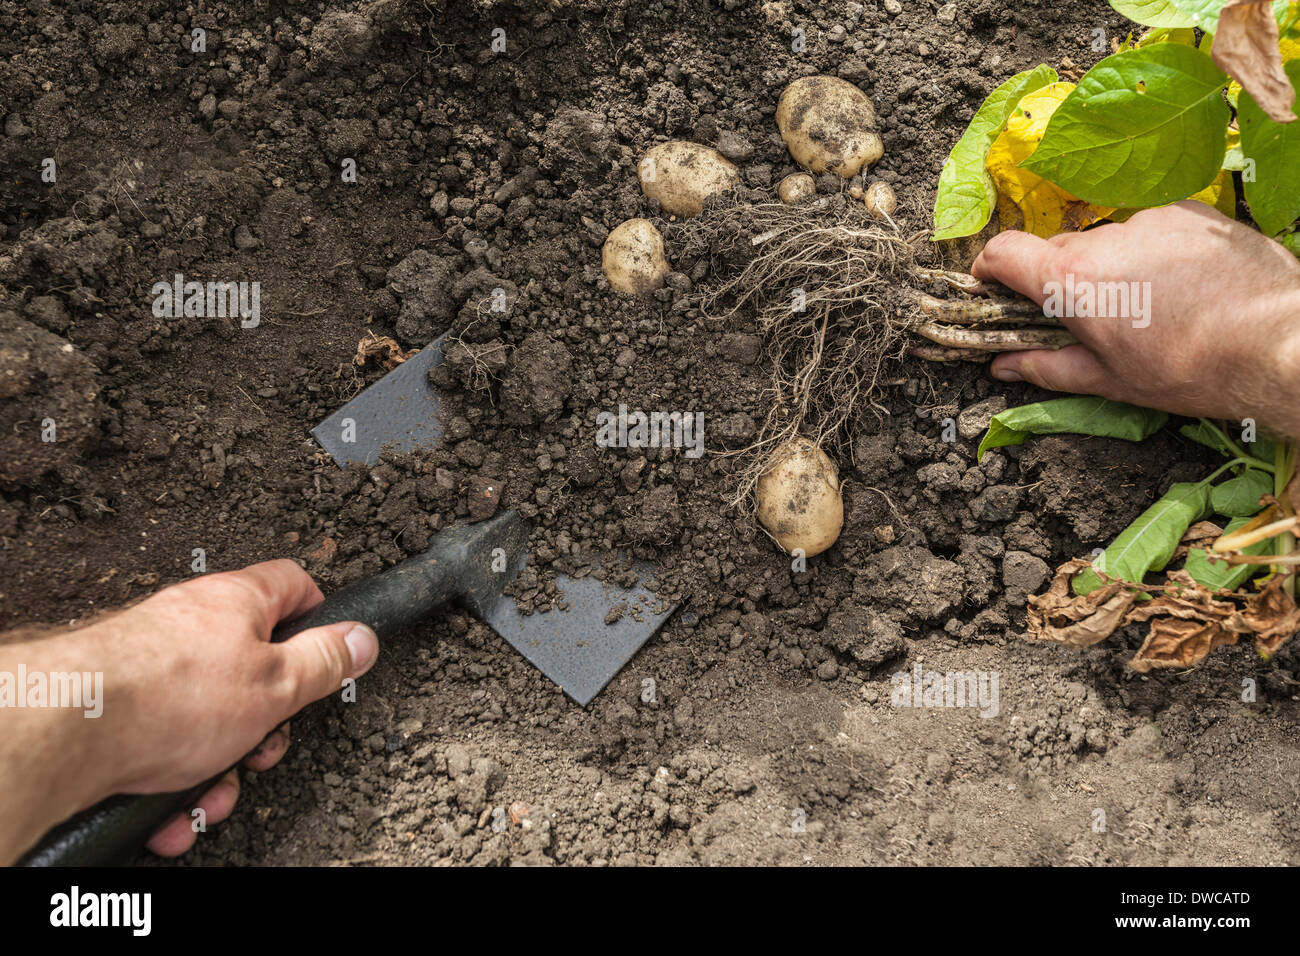 Mature man digging up potatoes from garden - Stock Image